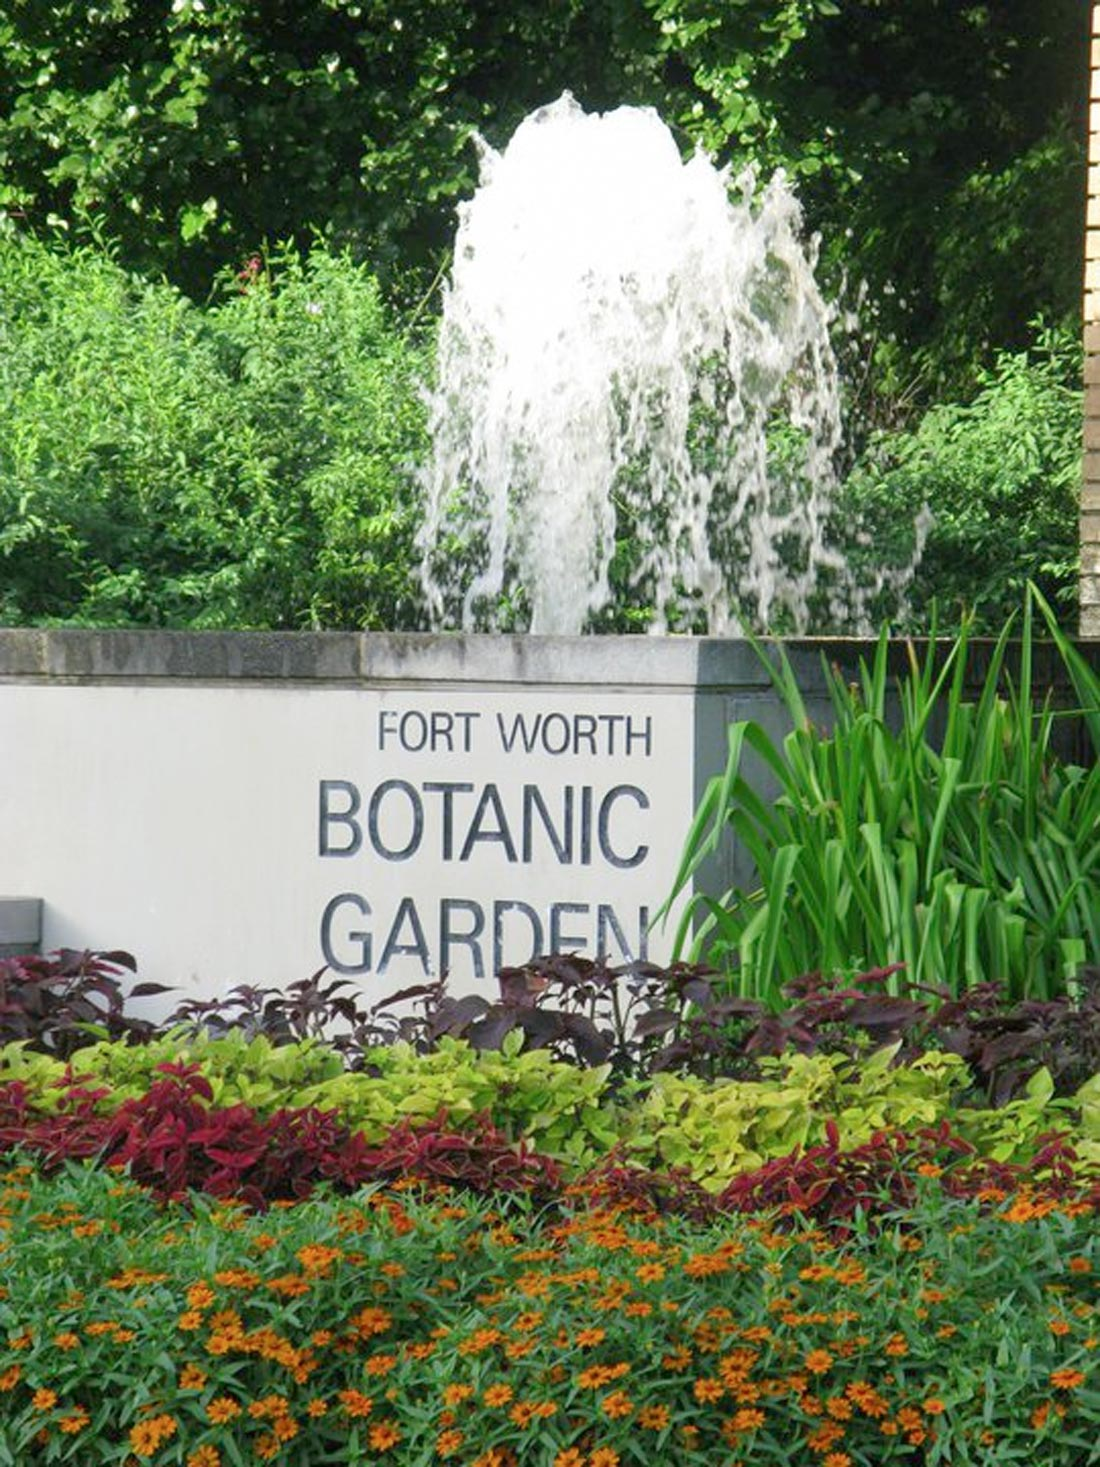 A Recent Study Shows The Beloved Fort Worth Botanic Garden Needs A  Transfusion Of About $15 Million To Keep It From Turning Into A  Post Apocalyptic Black ...